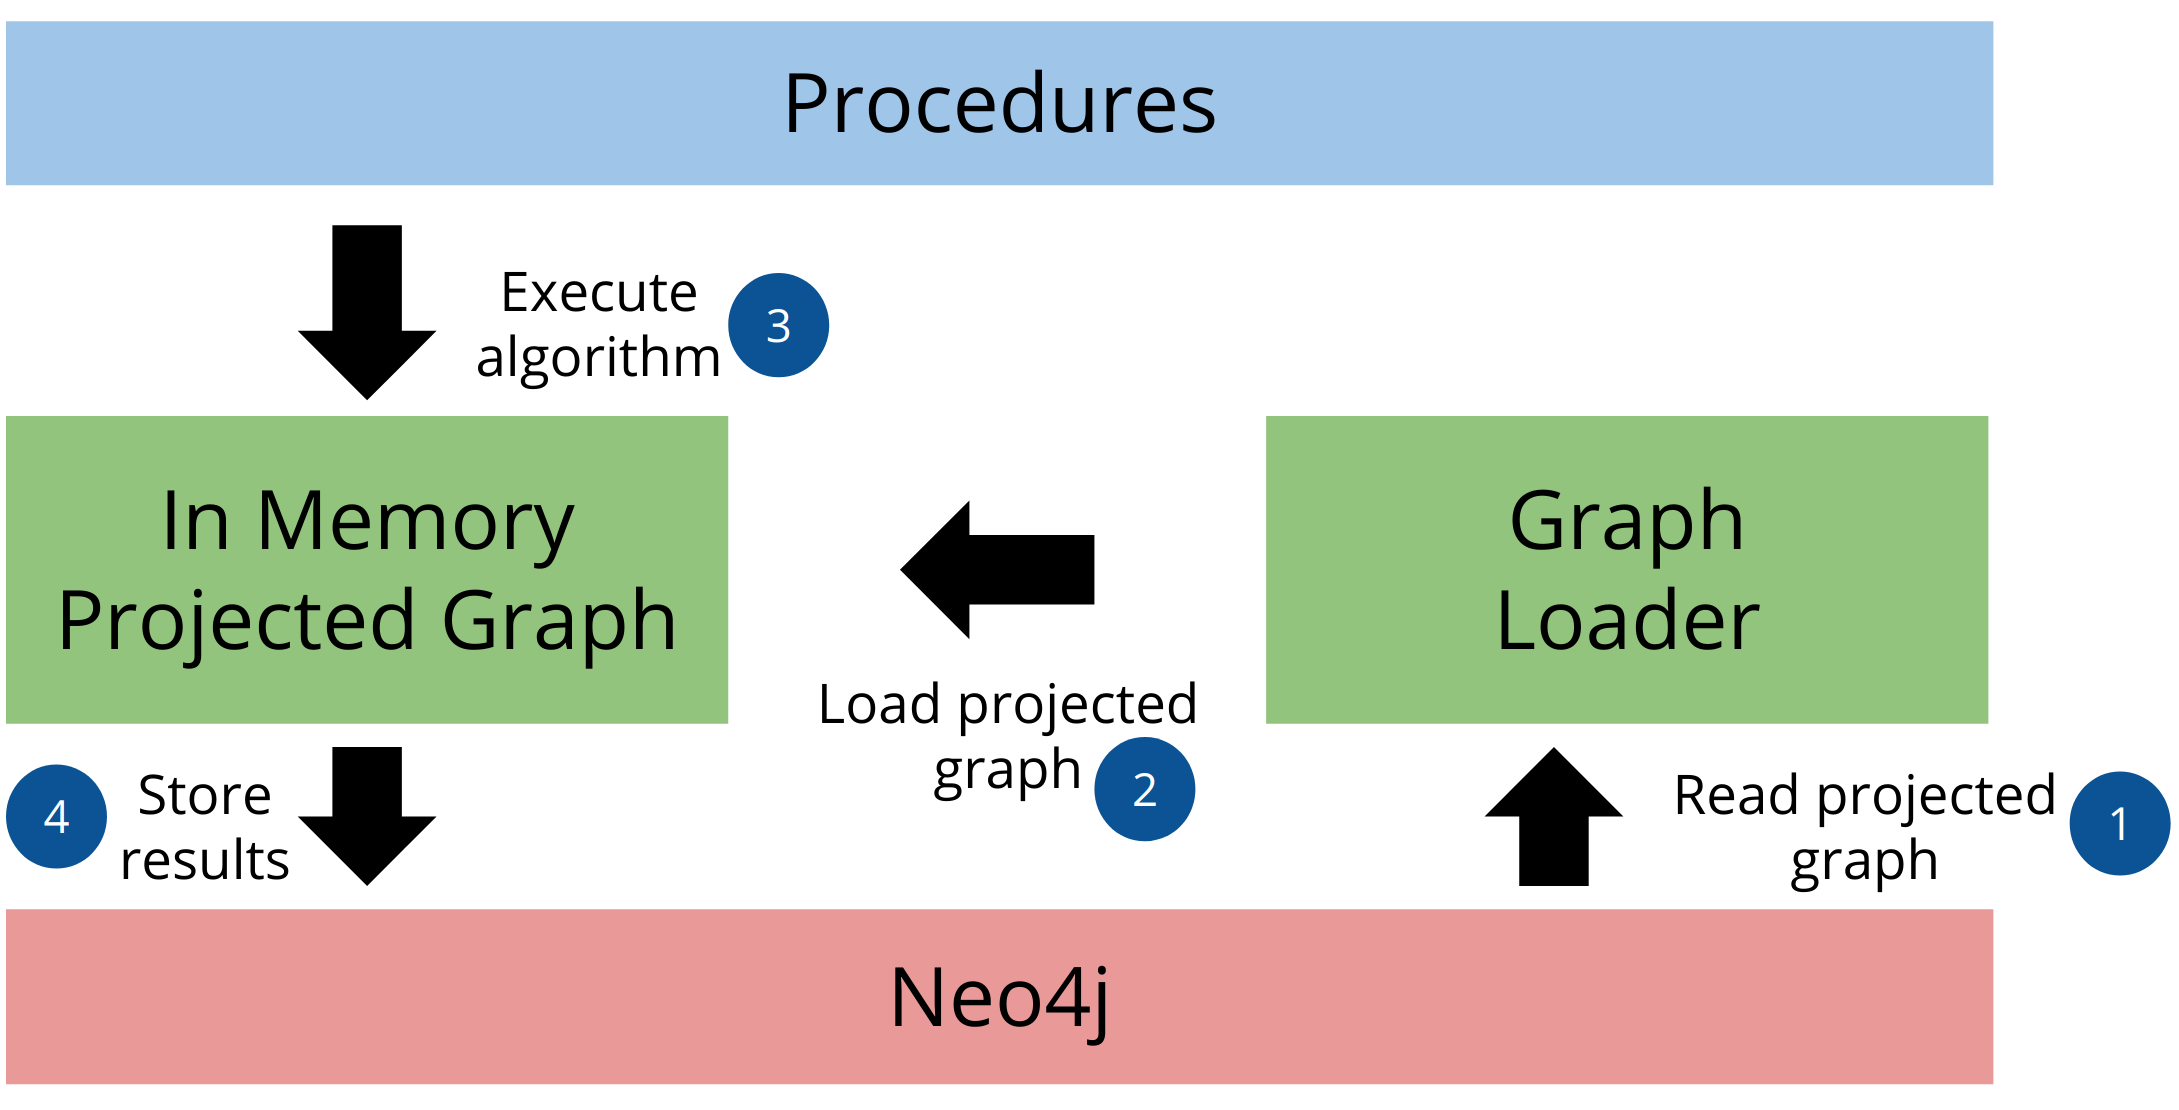 Projected graph model